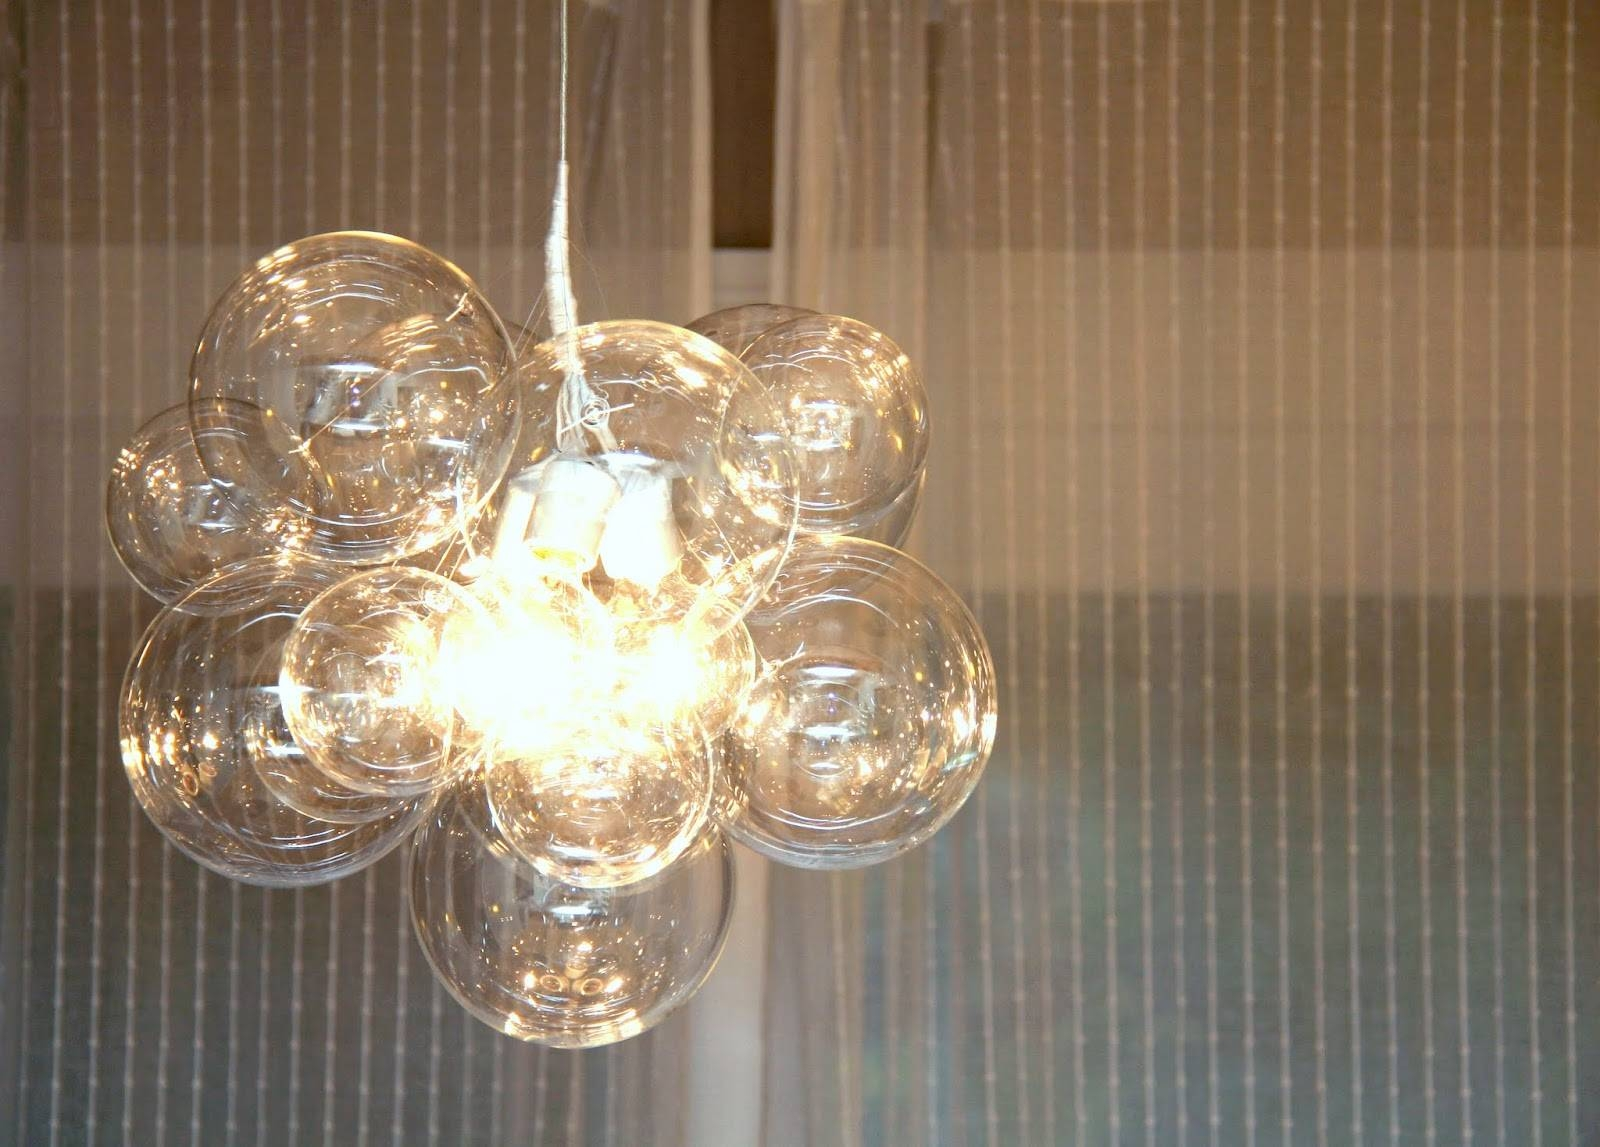 Decor Of Bubble Pendant Light Pertaining To Home Decorating with regard to Bubble Glass Pendant Lights (Image 5 of 15)